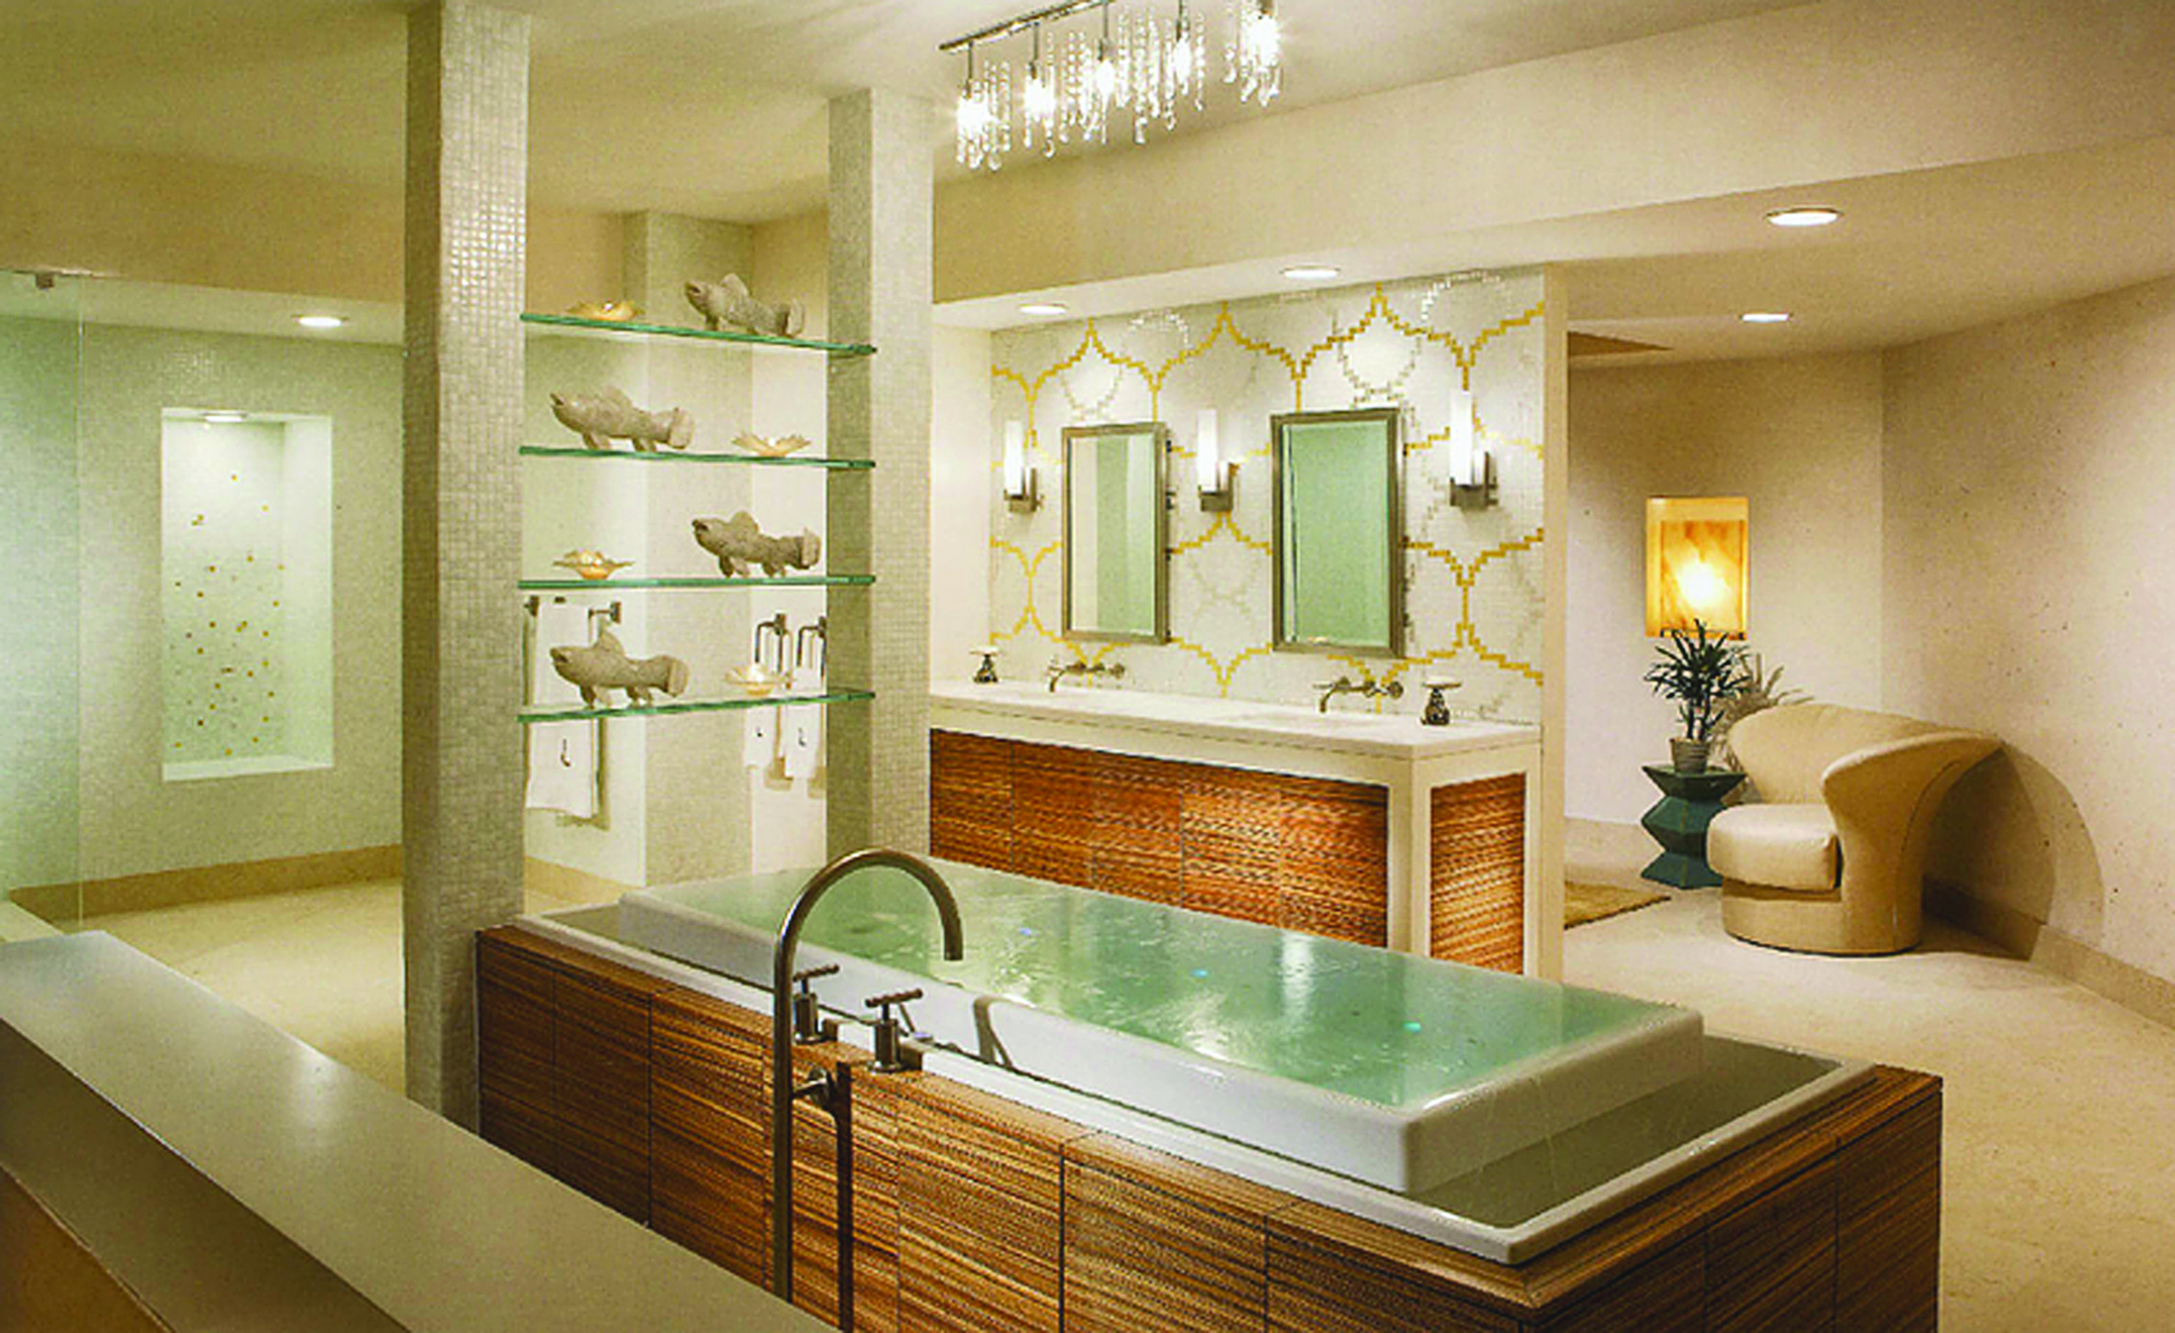 Creating an at home getaway by incorporating a spa bathroom in a home is. Turn Your Bathroom Into a Spa   Vermont Maturity